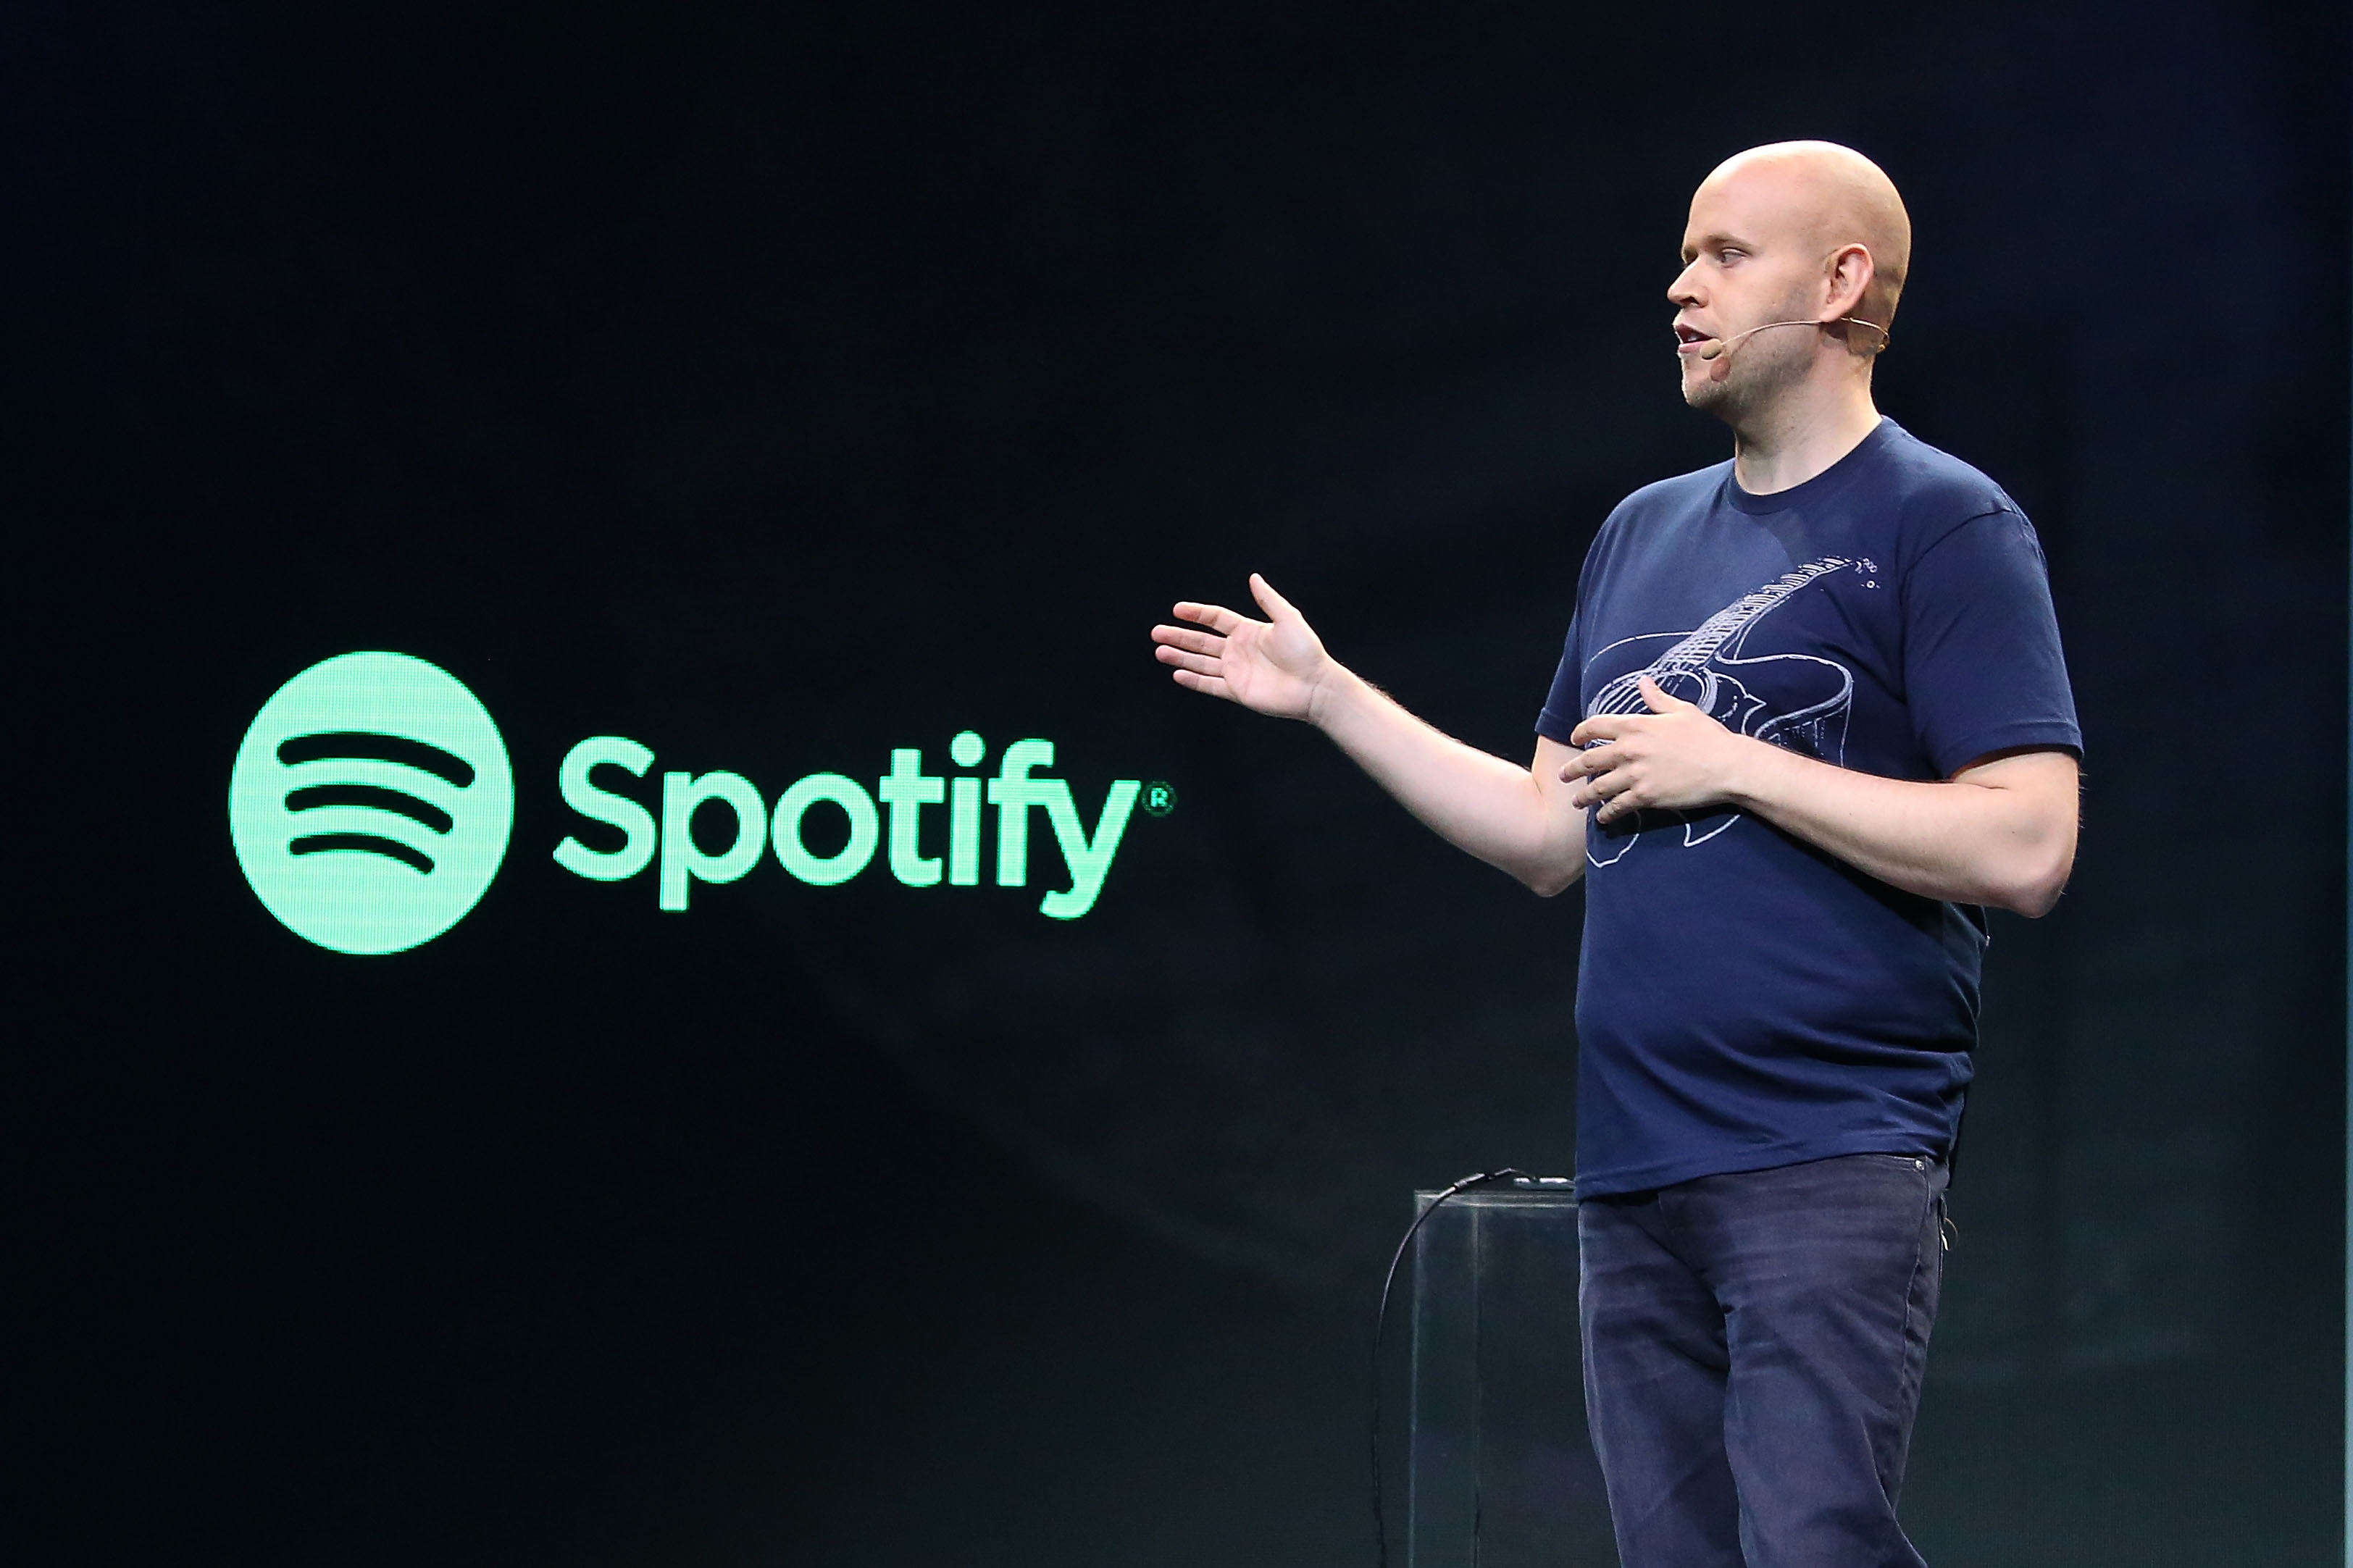 Spotify Plans to Let Users Listen to Videos Without Watching Them | Time